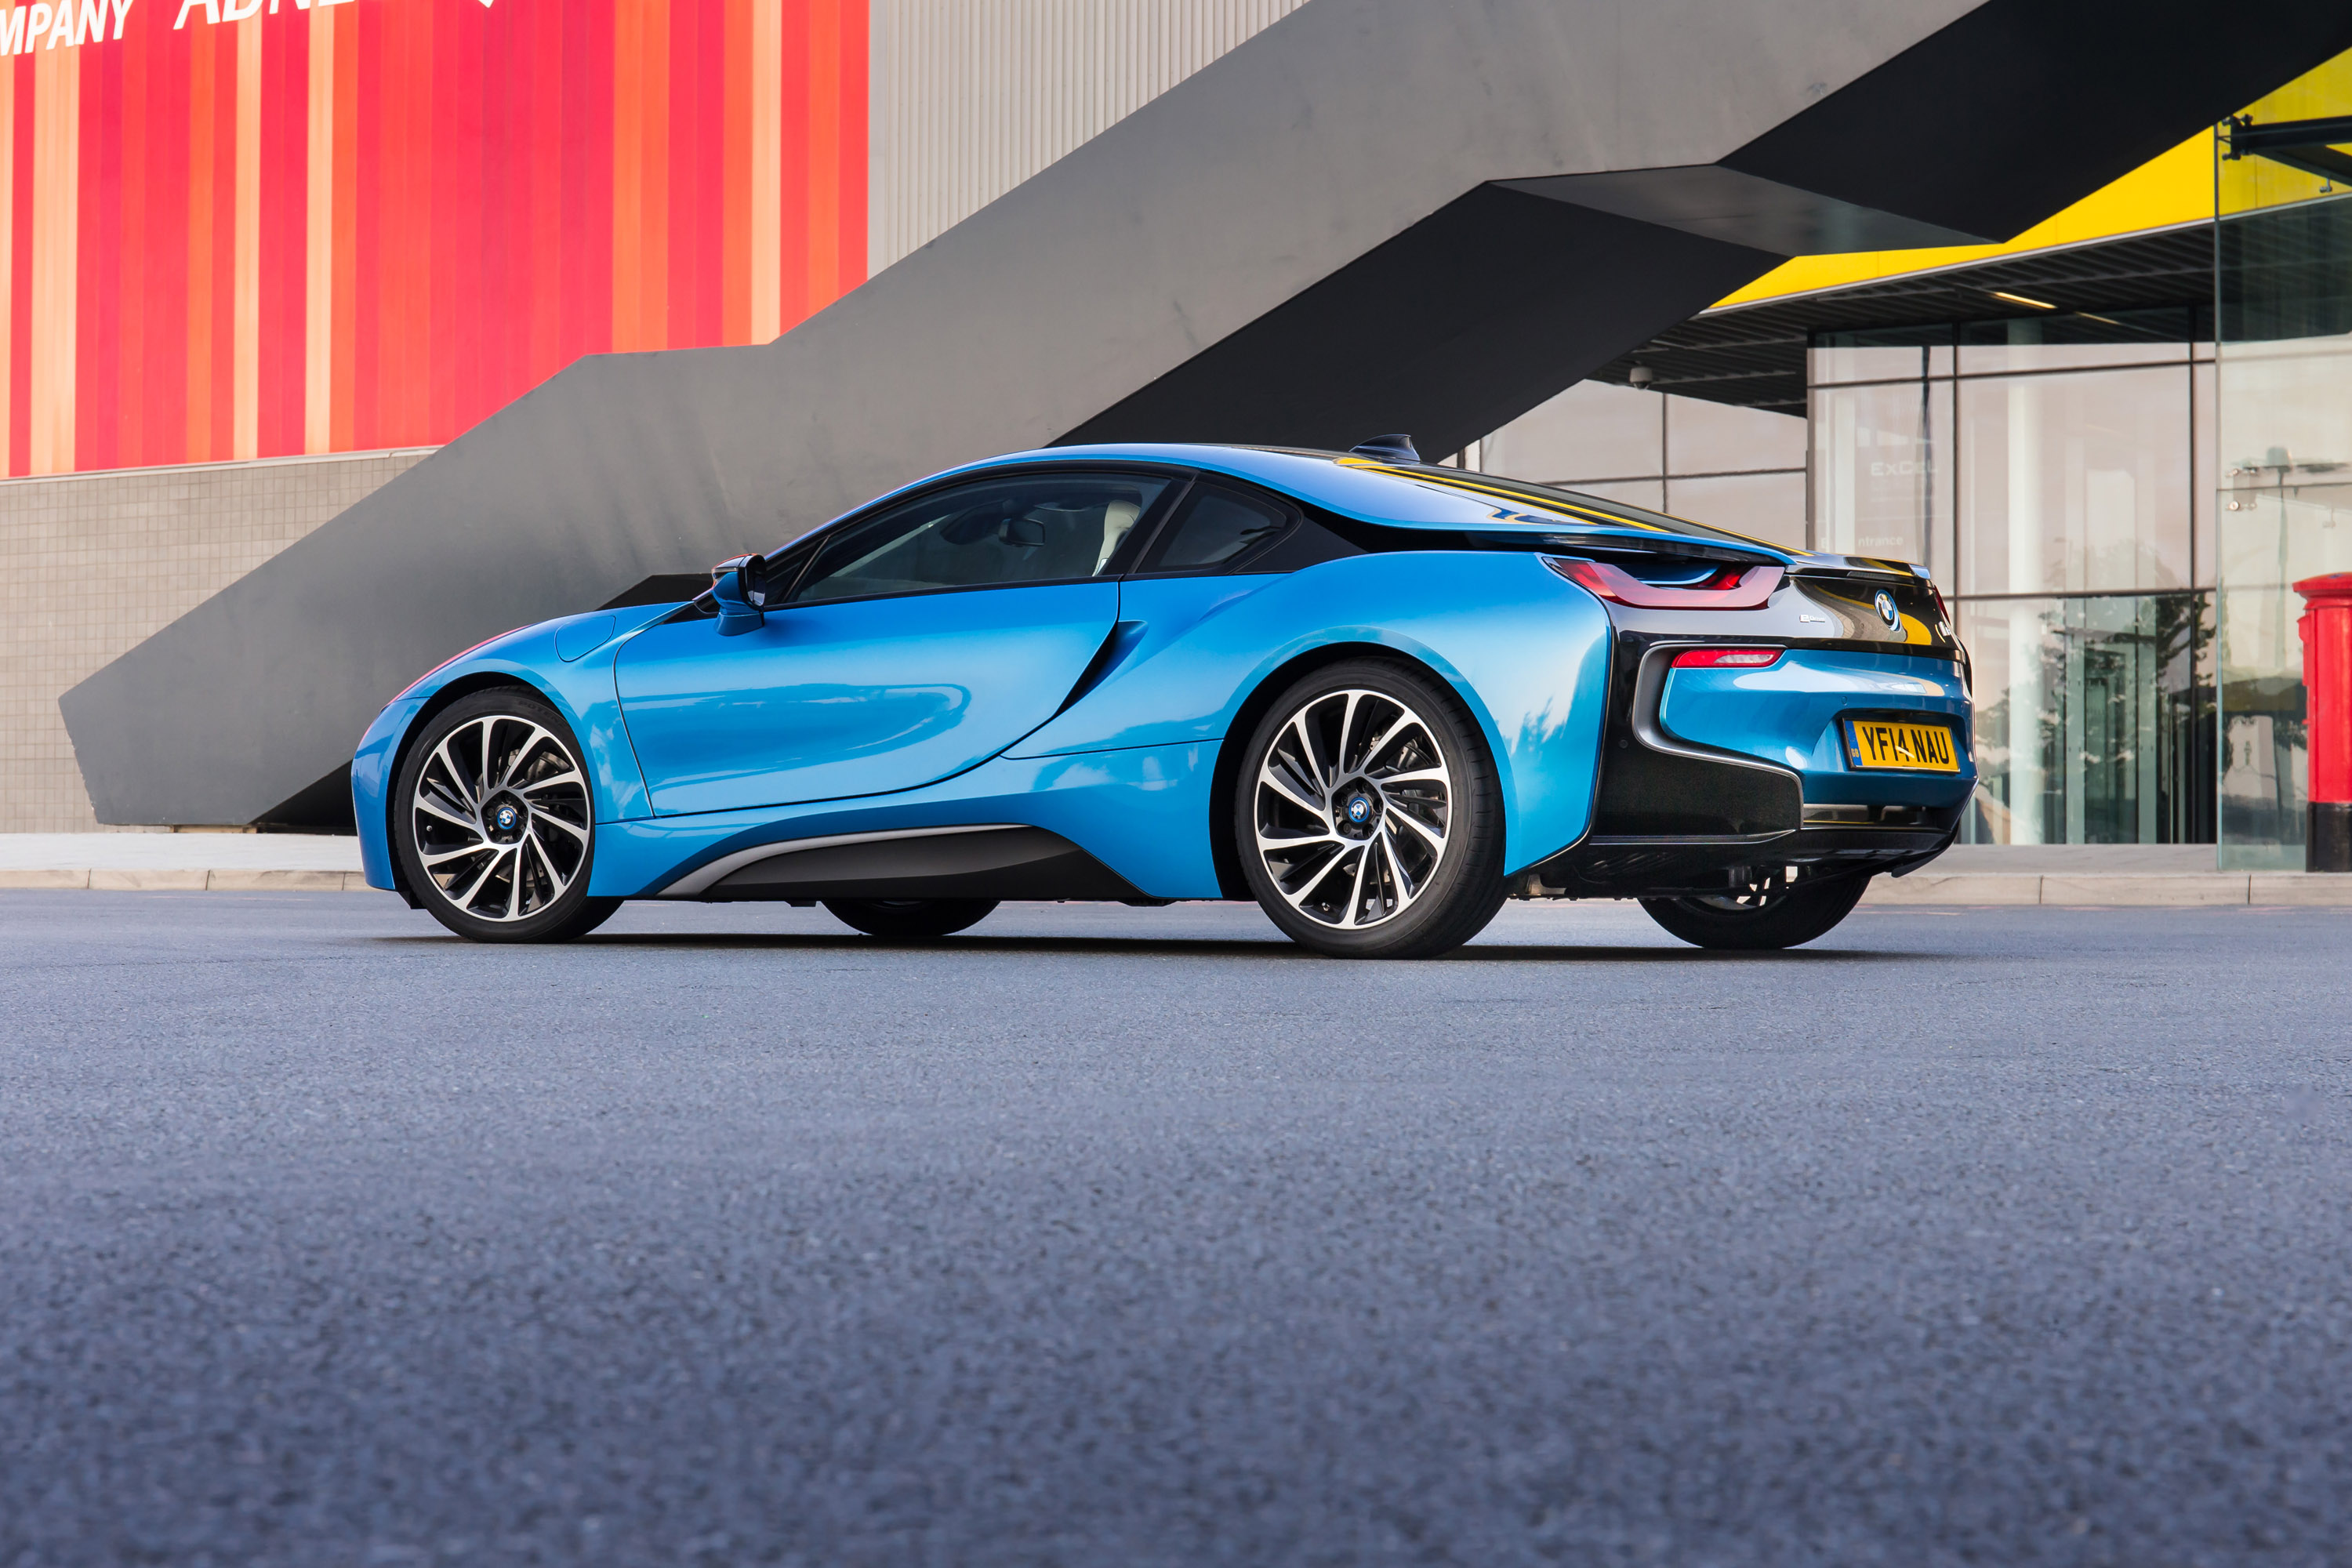 2015 Bmw I8 Uk Price 94 845